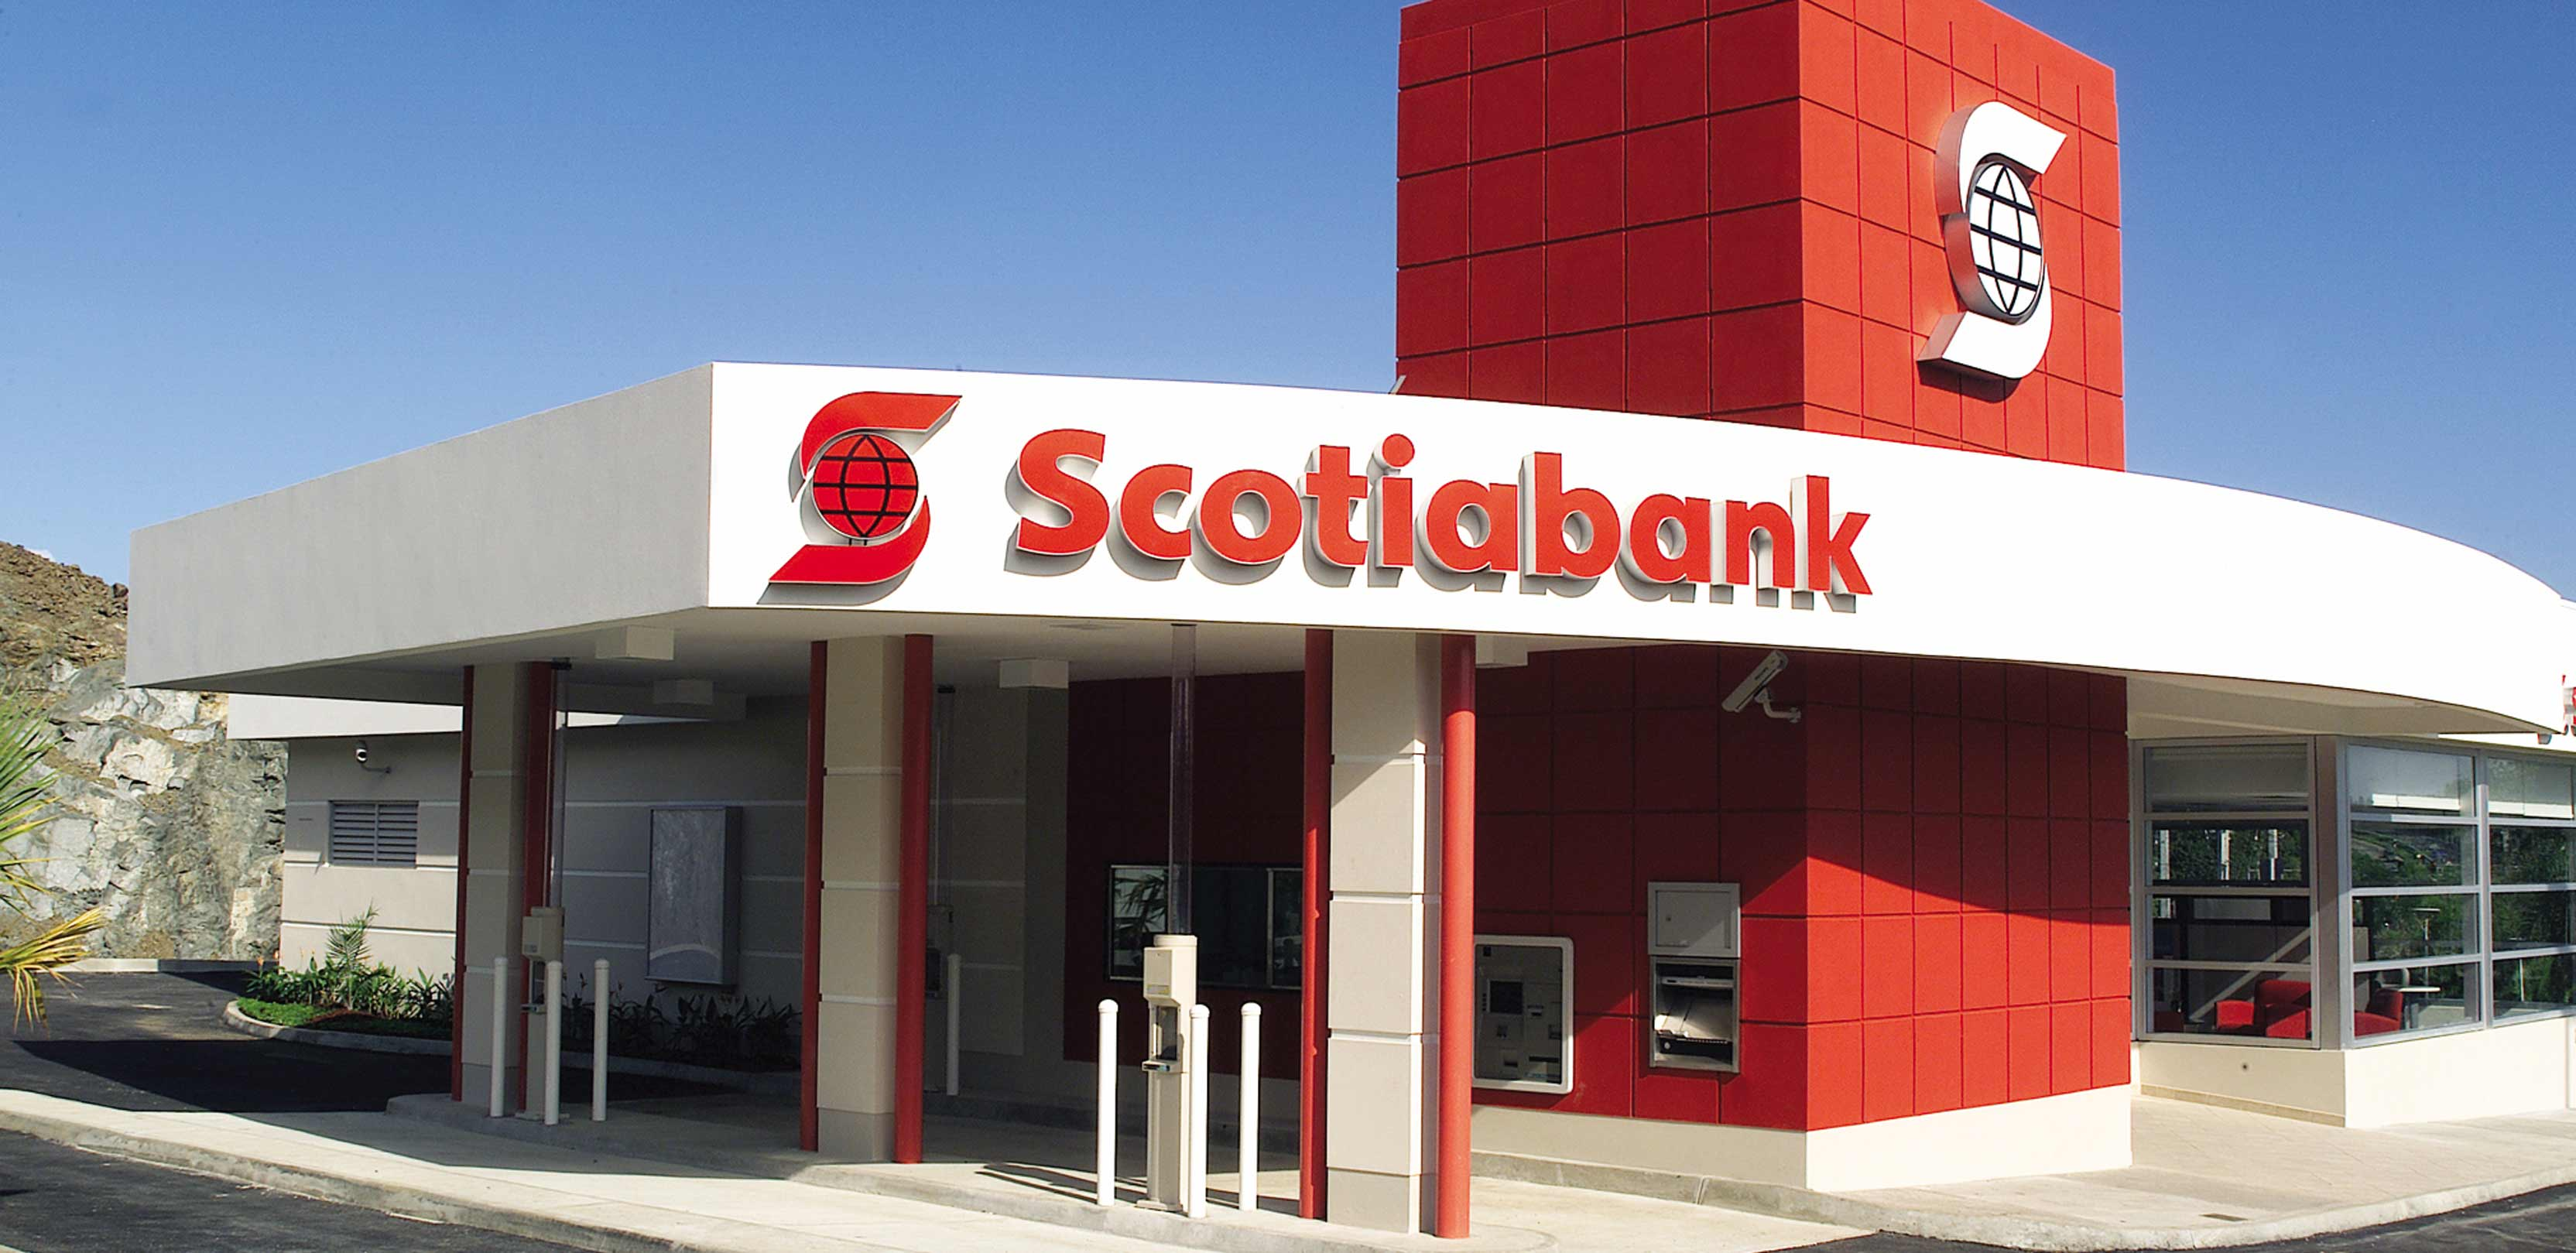 Scotiabank Storefront - Scotiabank cybersecurity